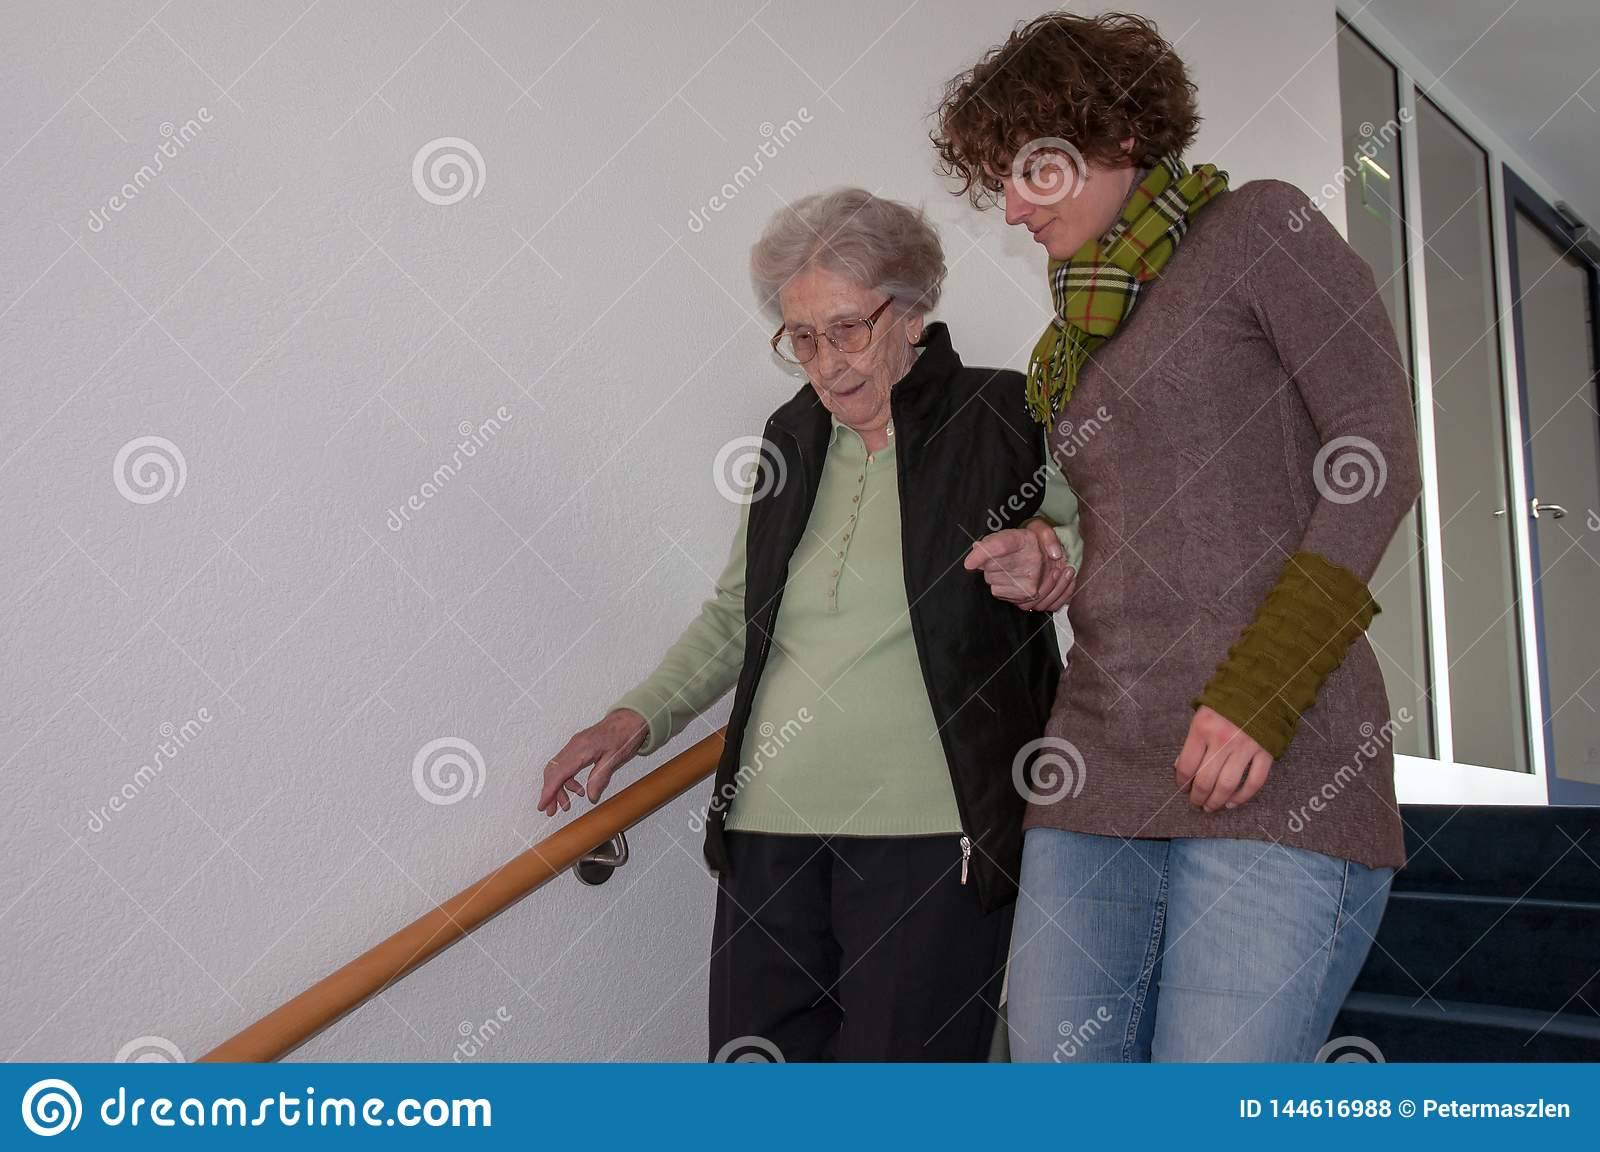 Senior woman going down stairs with helping hands of young woman